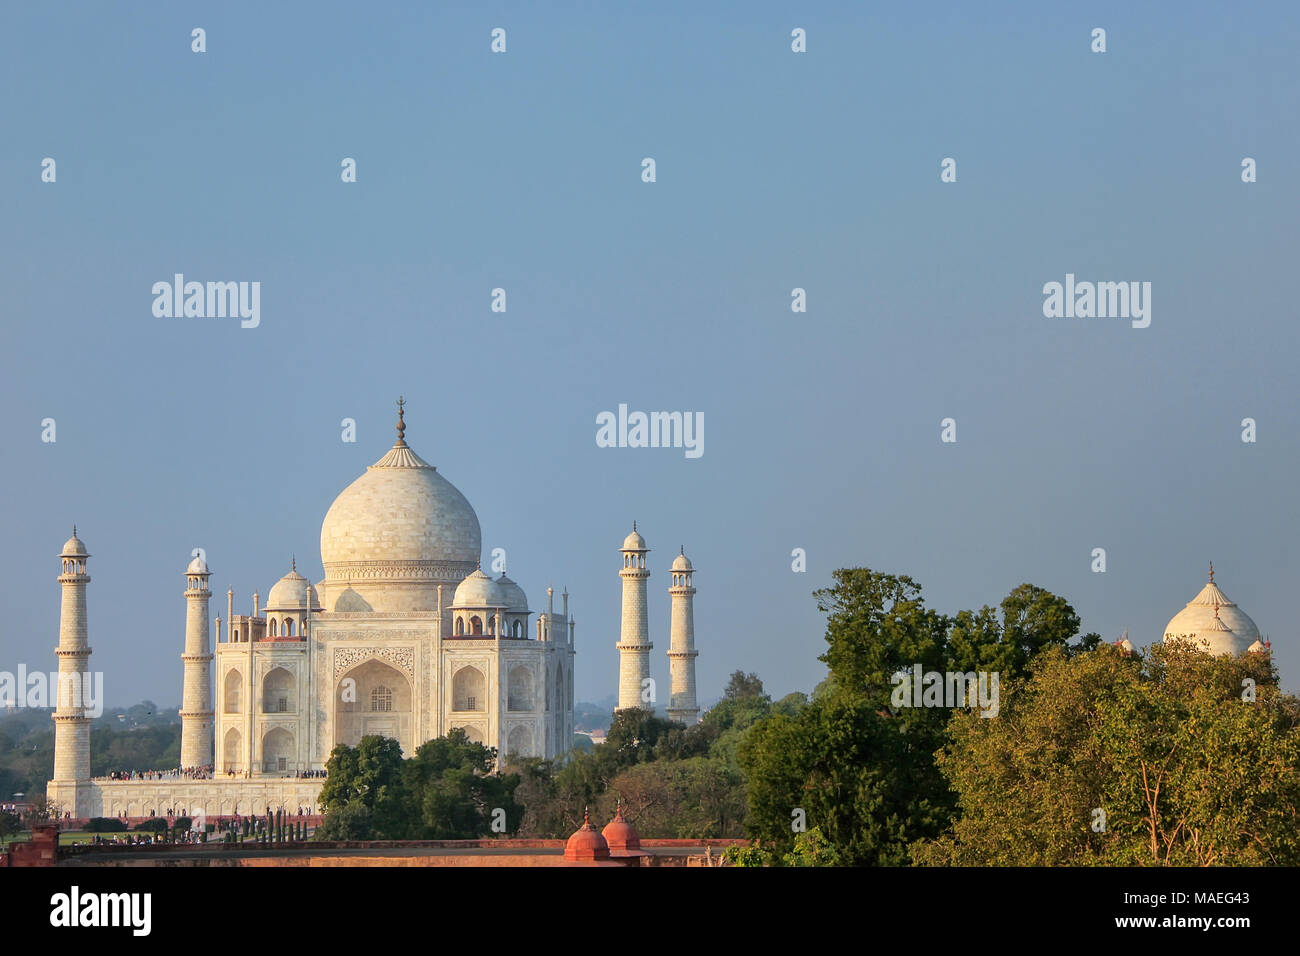 View of Taj Mahal in Agra, Uttar Pradesh, India. It was build in 1632 by Emperor Shah Jahan as a memorial for his second wife Mumtaz Mahal. - Stock Image